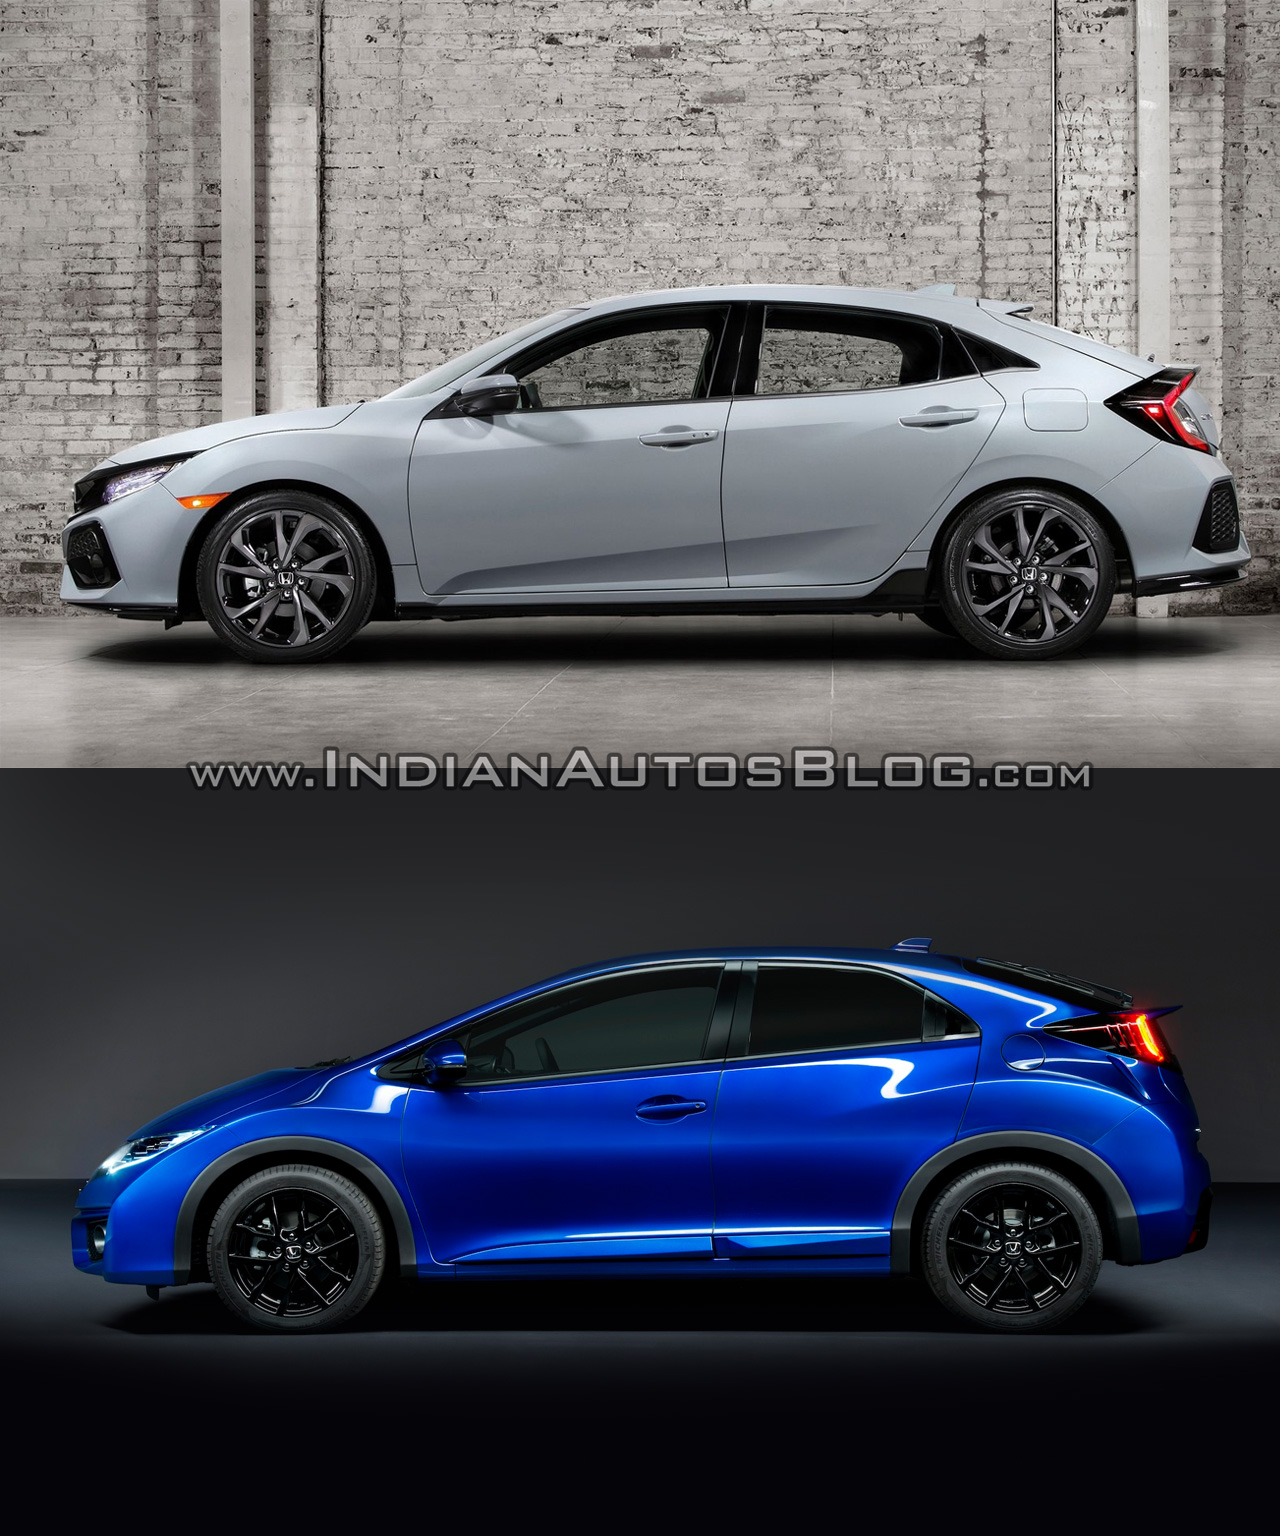 2017 honda civic hatchback vs 2015 honda civic hatchback side profile. Black Bedroom Furniture Sets. Home Design Ideas